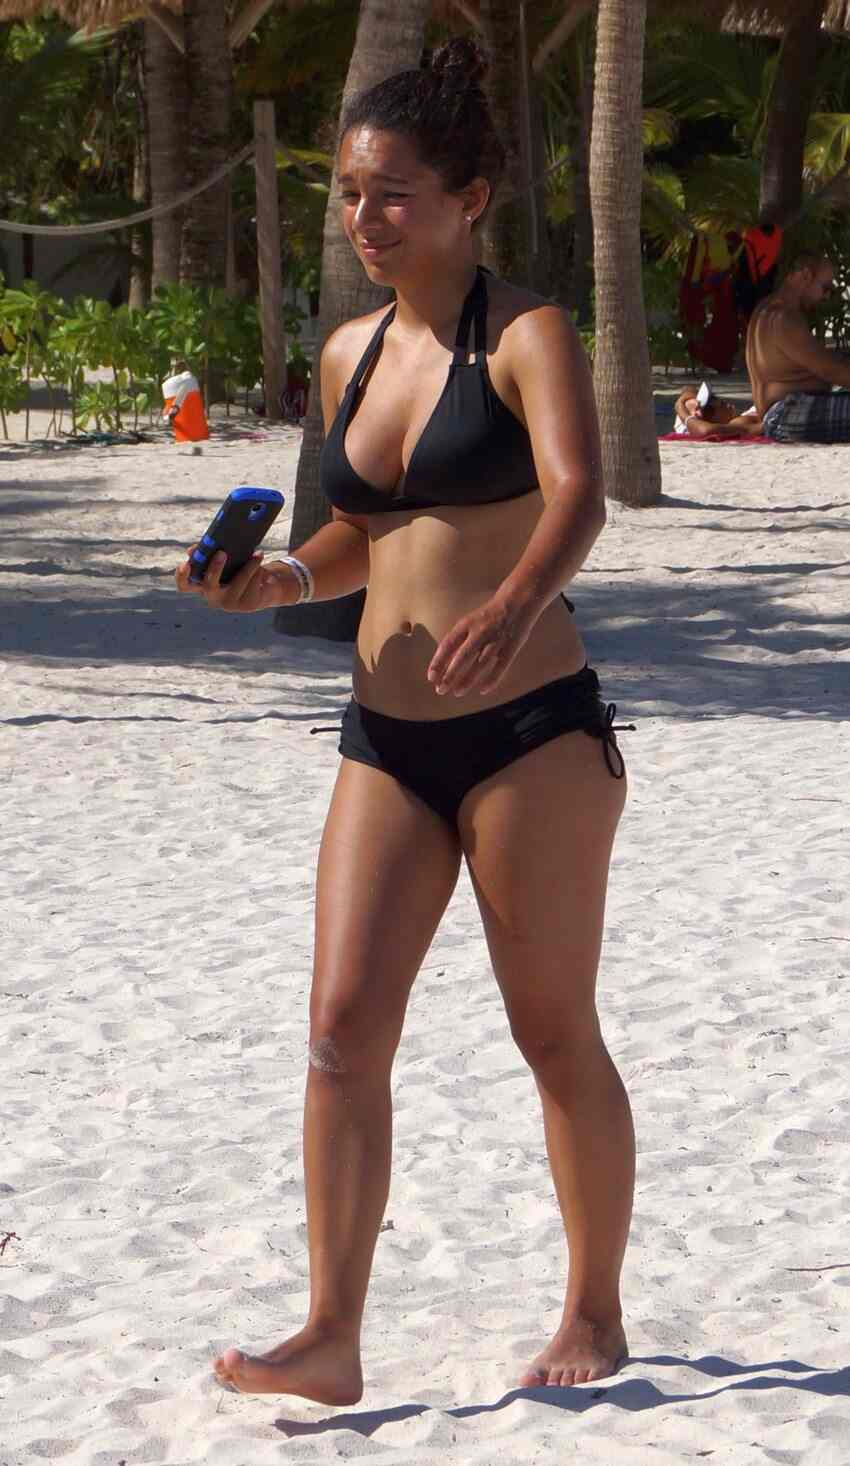 A hot Mexican babe who was walking along the beach in Akumal.